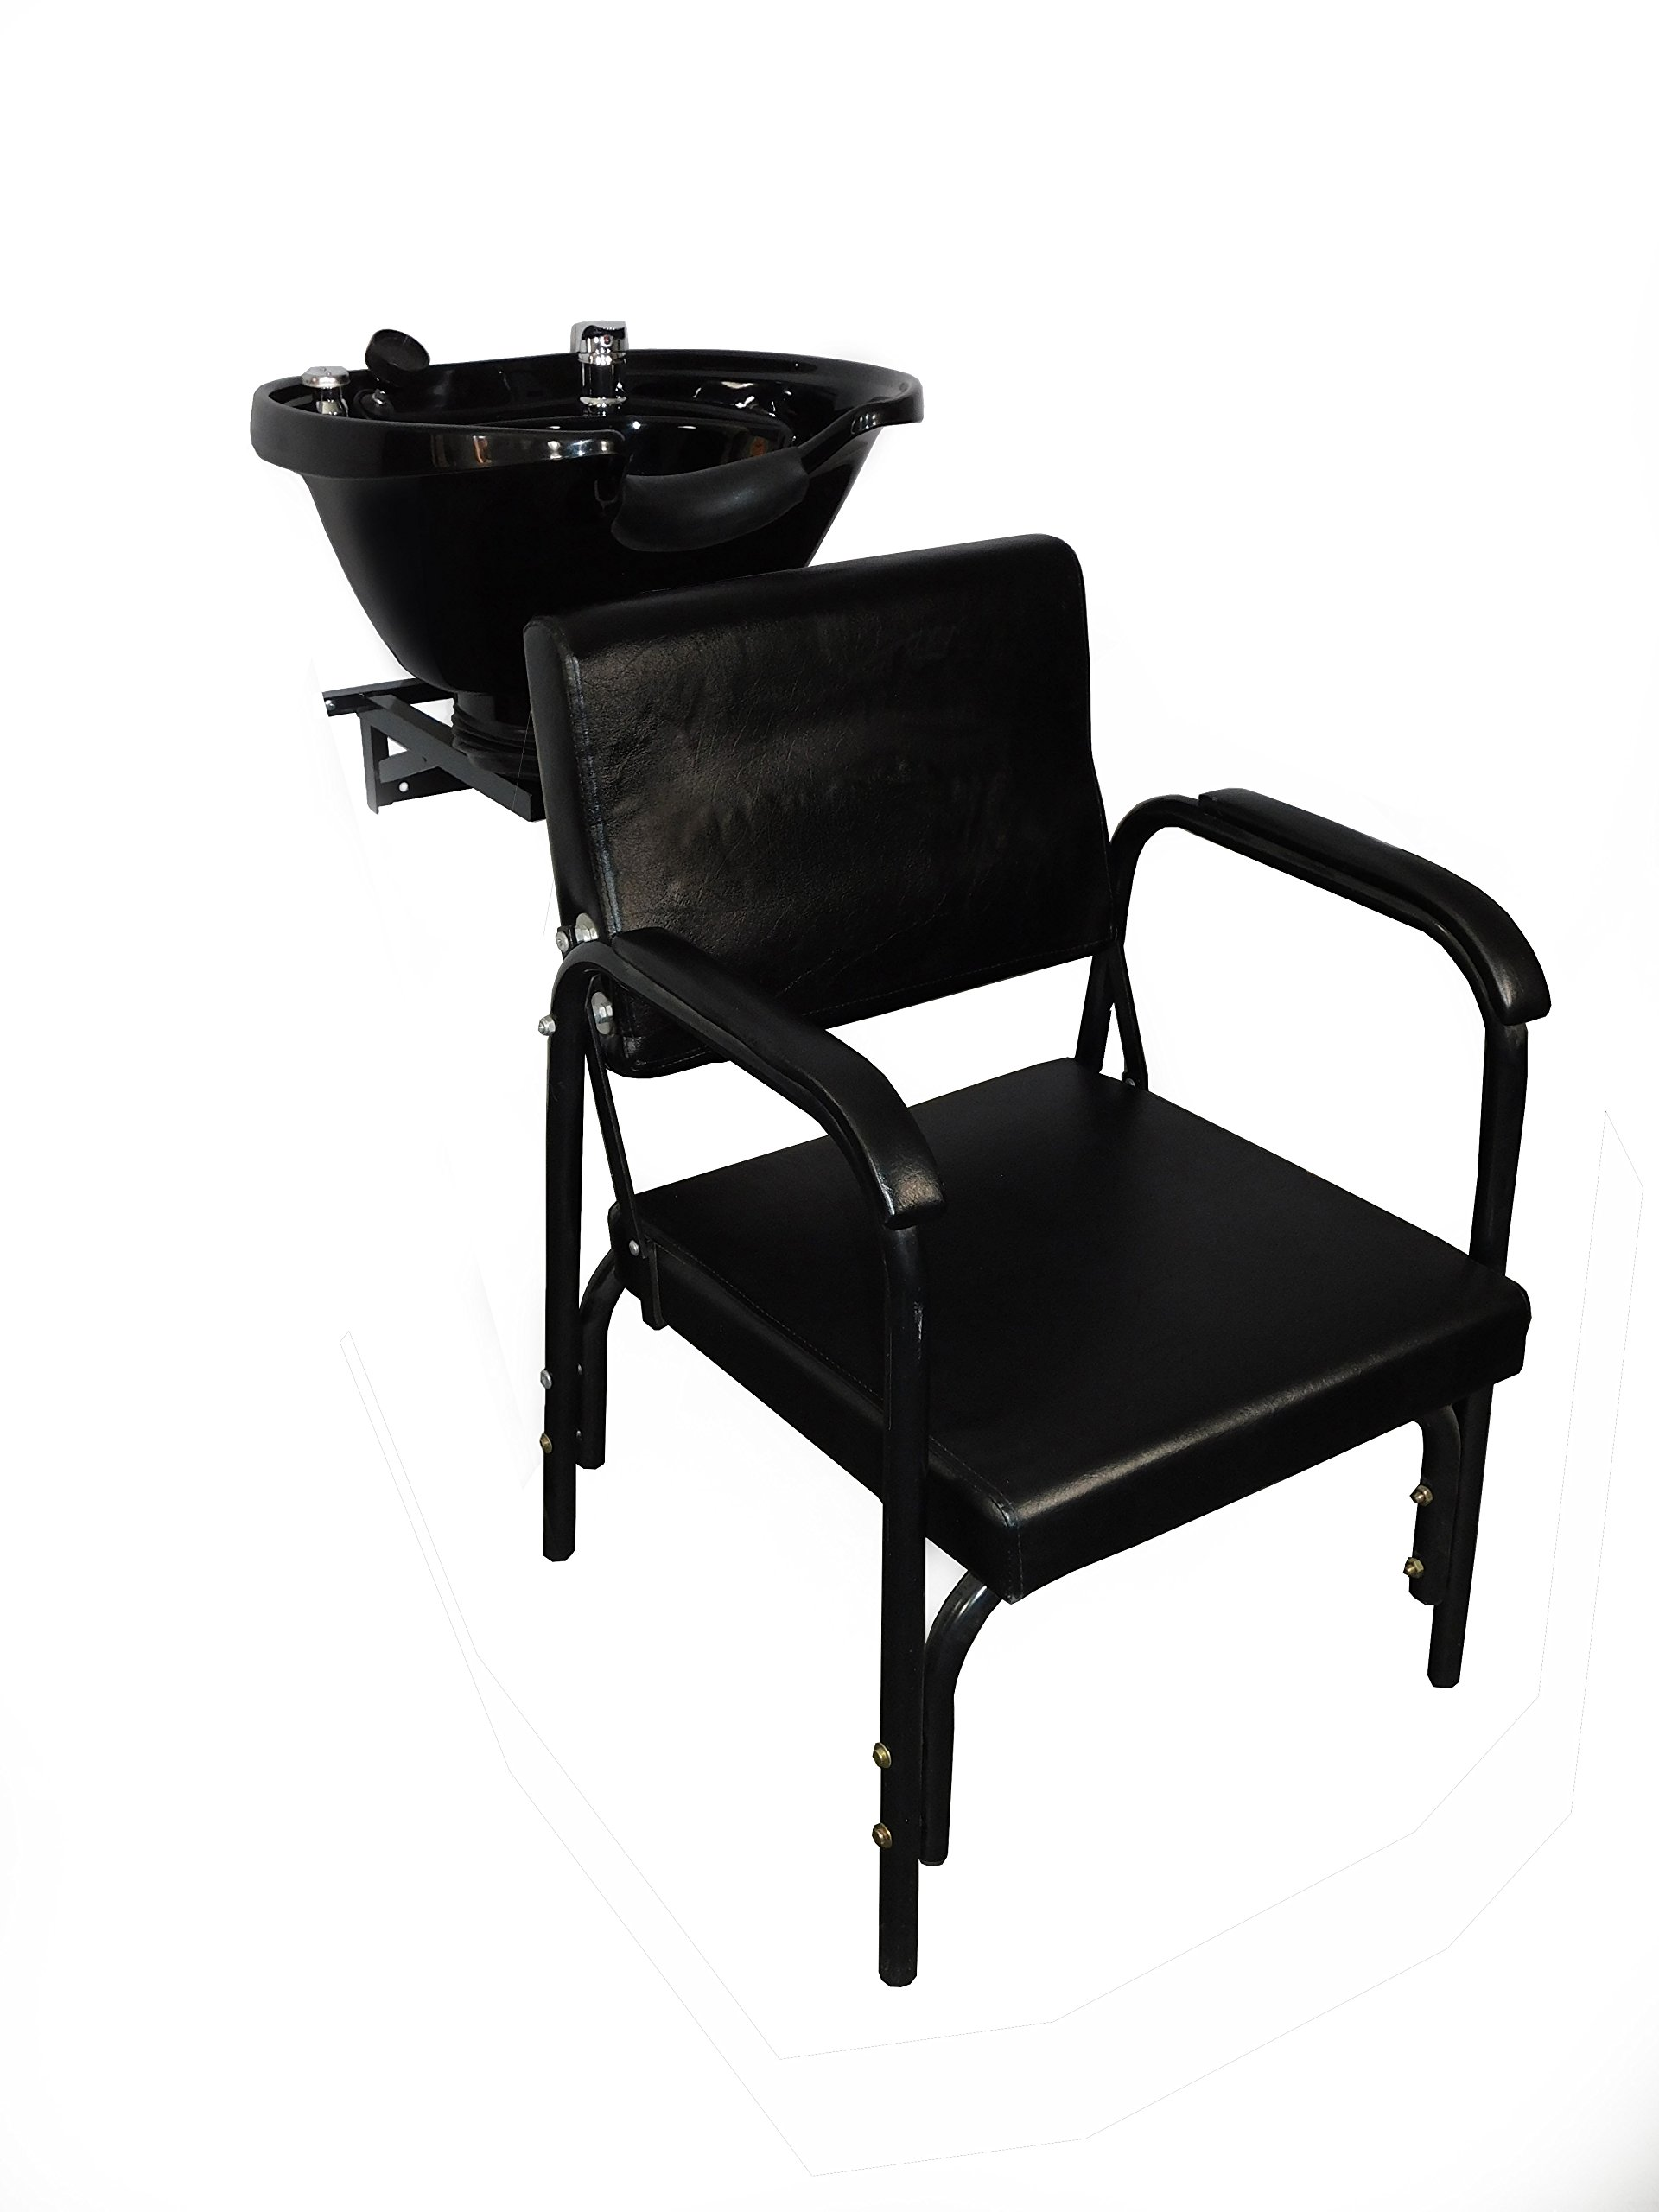 Extra Large Salon Backwash Shampoo Tilt Bowl Sink Wall Mounted Easy Reclining Shampoo Chair TLC-B38WT-216